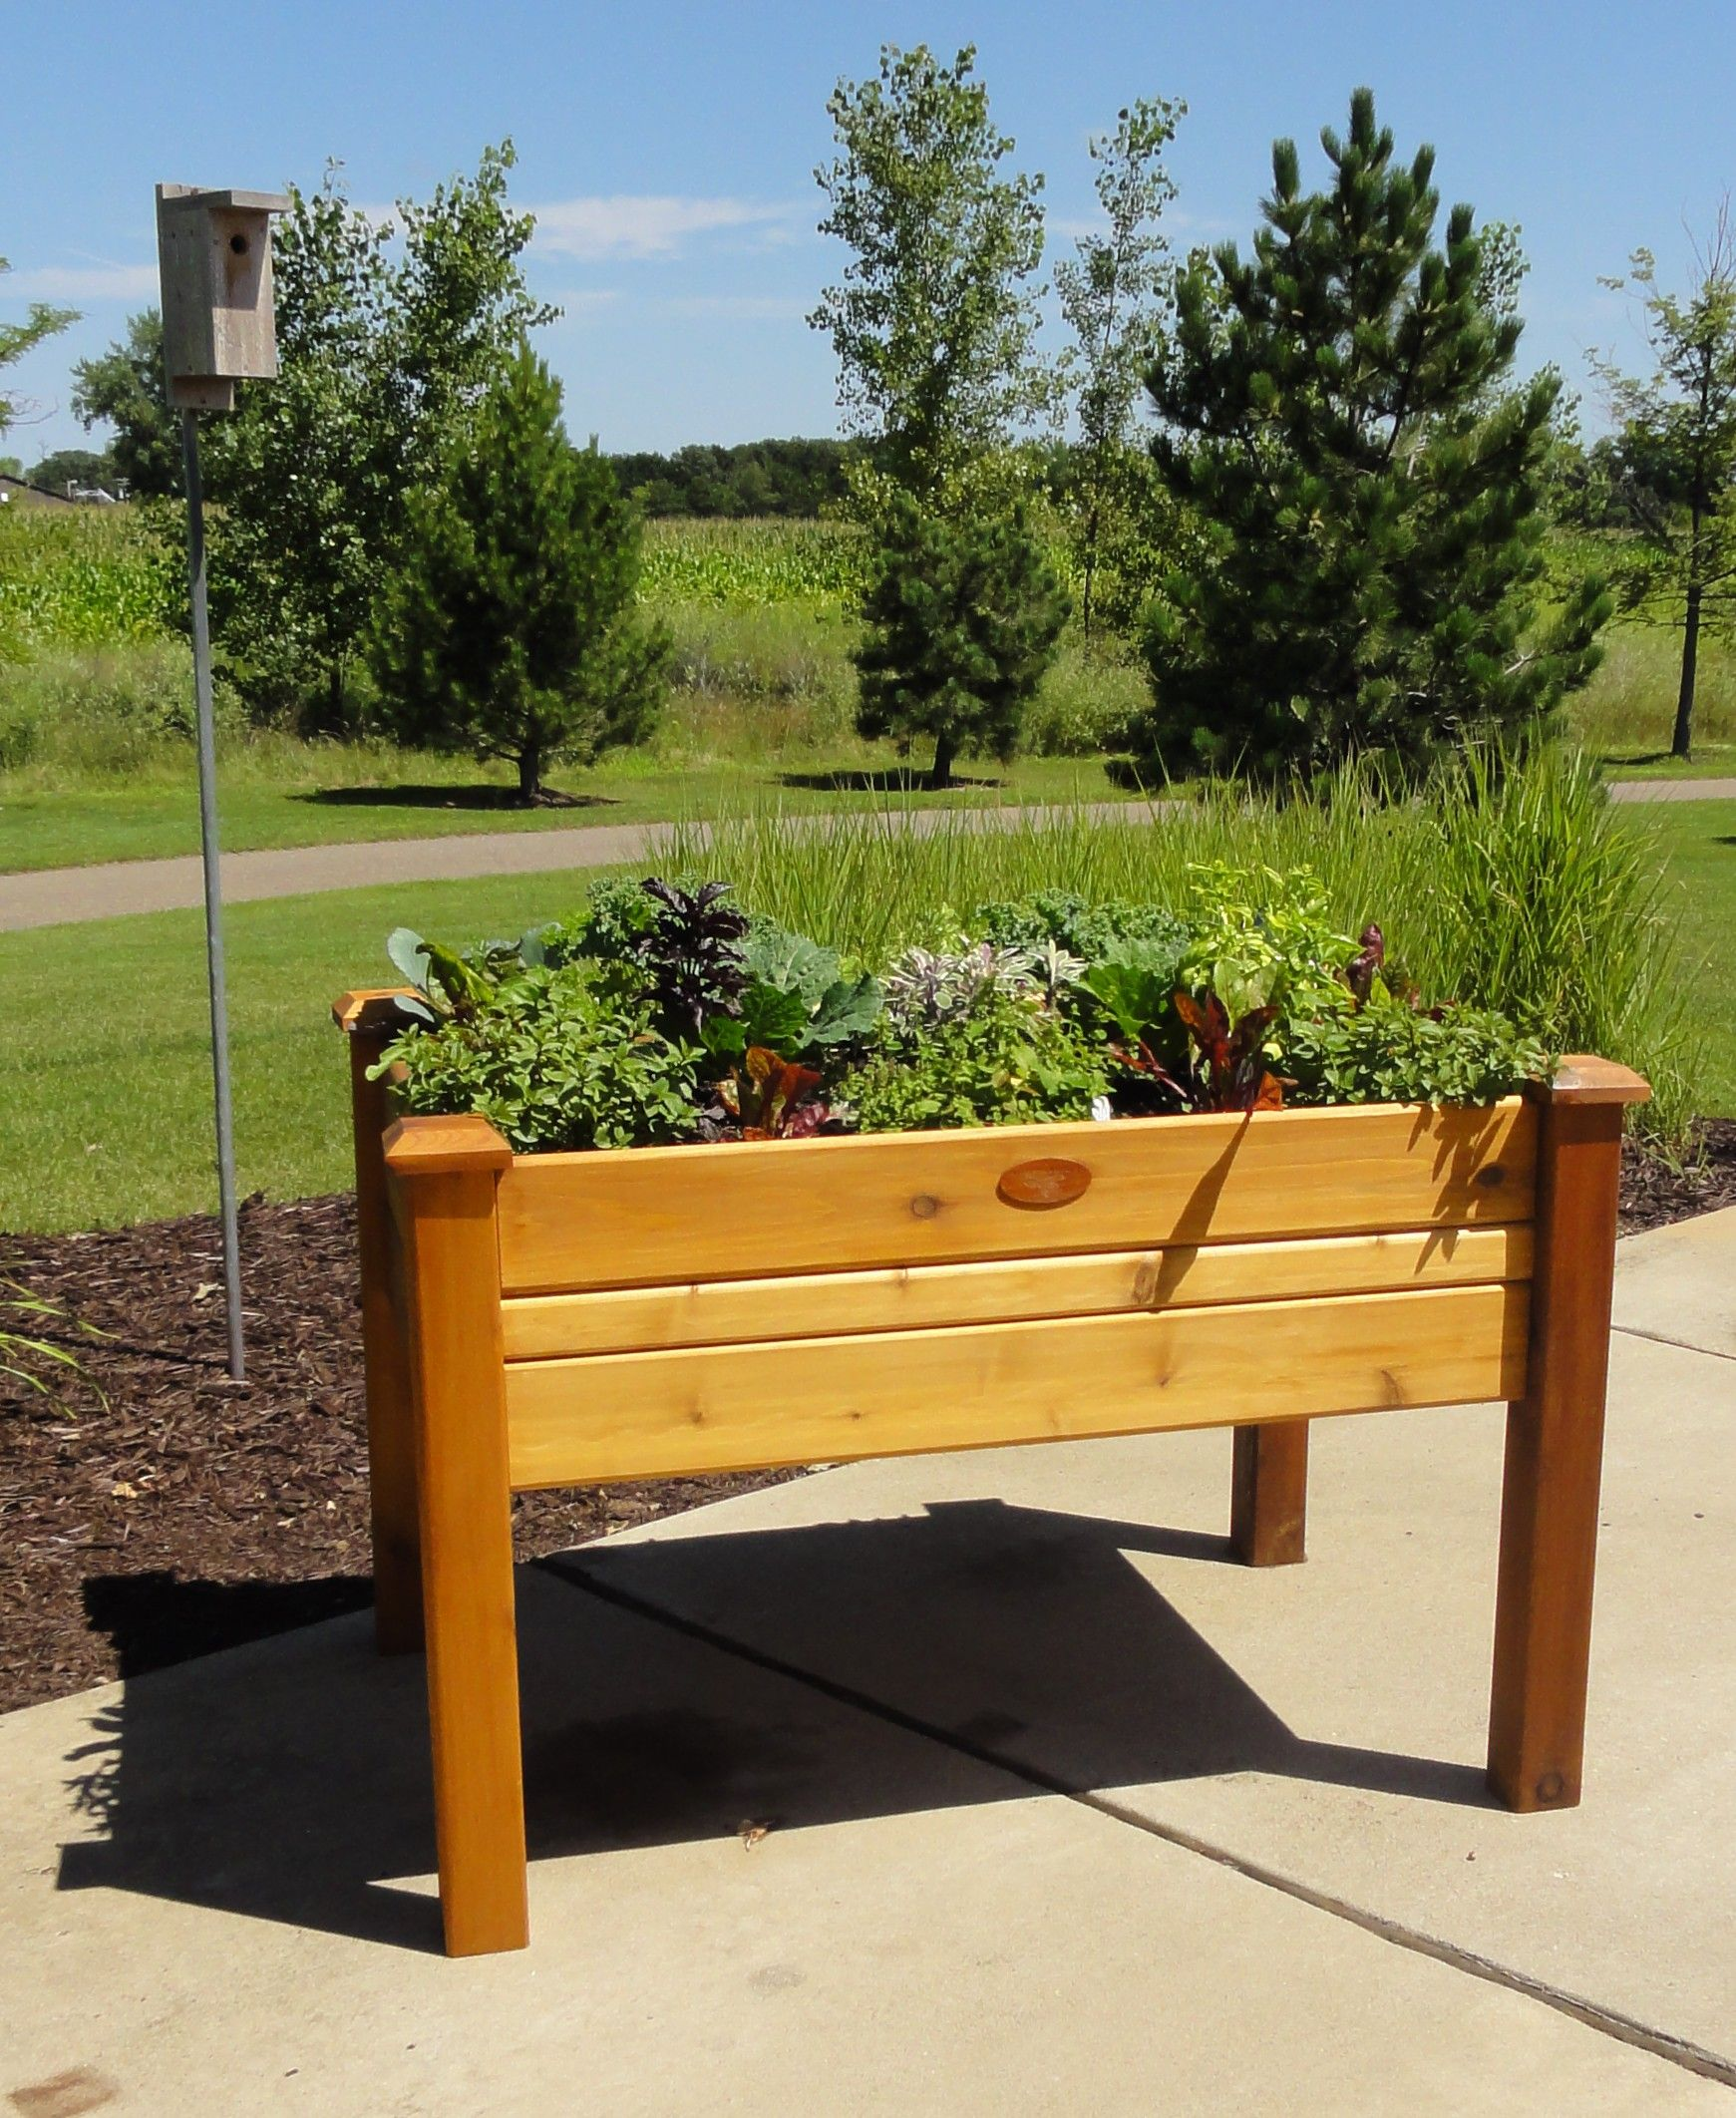 Elevated garden beds to protect herbs and veggies from the